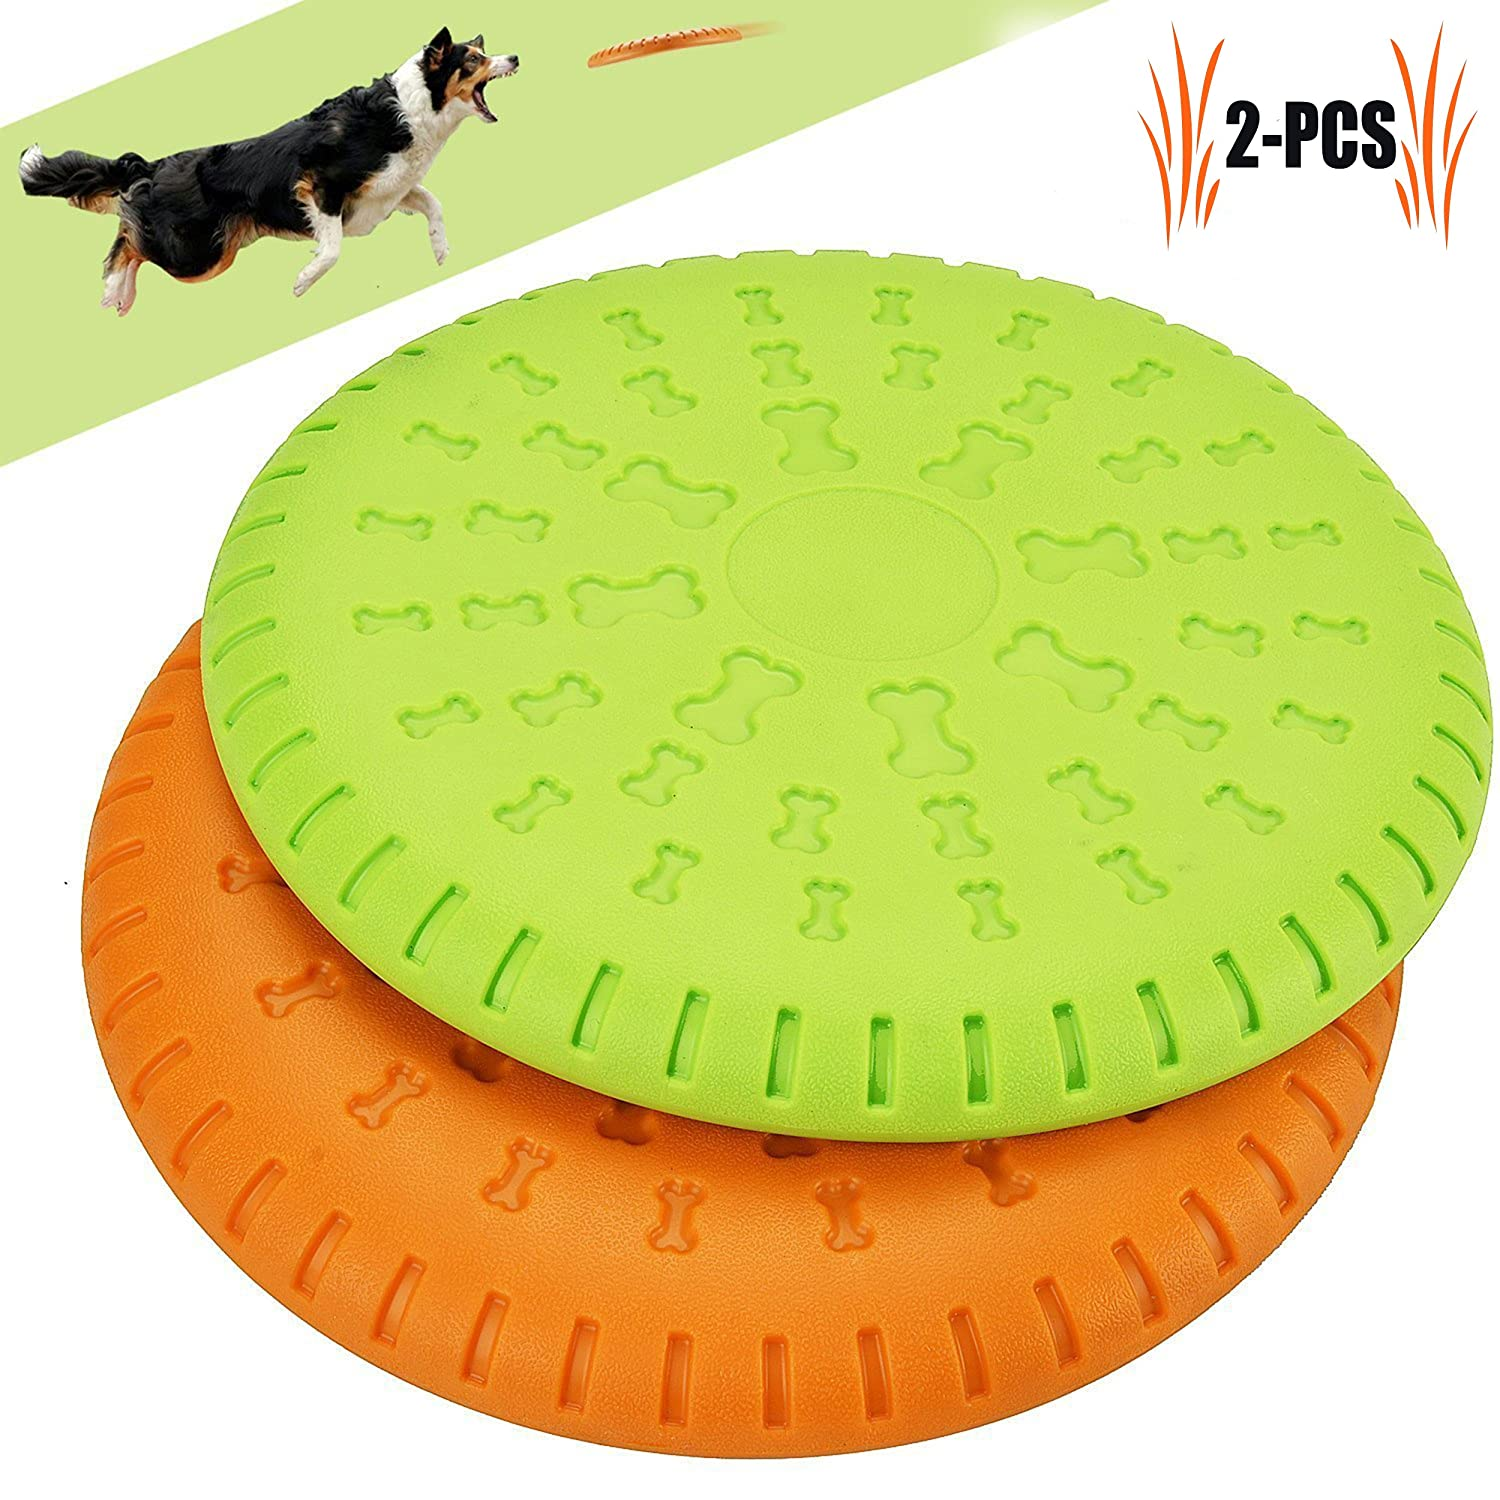 Legendog Dog Flying Disc, 2 Pcs Large Dog Flying Disc Pack Tough Rubeer Multifunction Dog Toys Strong Pet Training Toys for Medium and Large Dogs orange and Green 9 inch